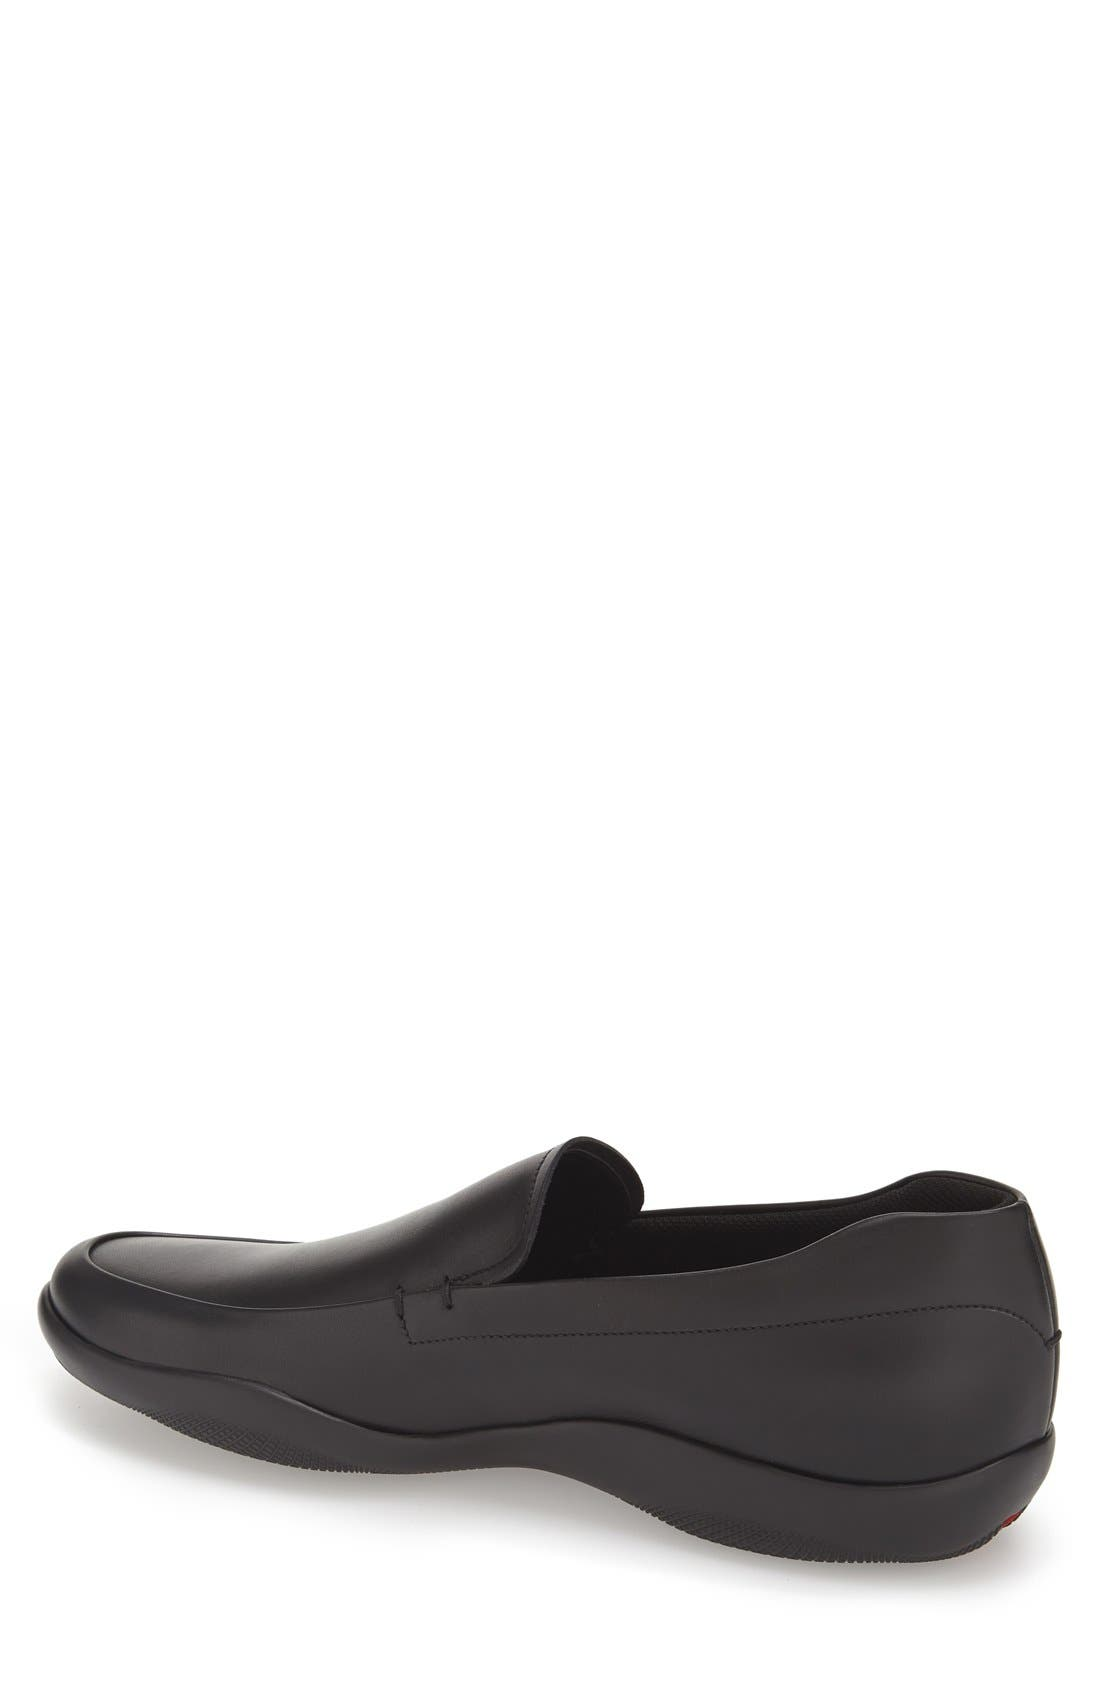 'New Toblak' Venetian Loafer,                             Alternate thumbnail 3, color,                             001